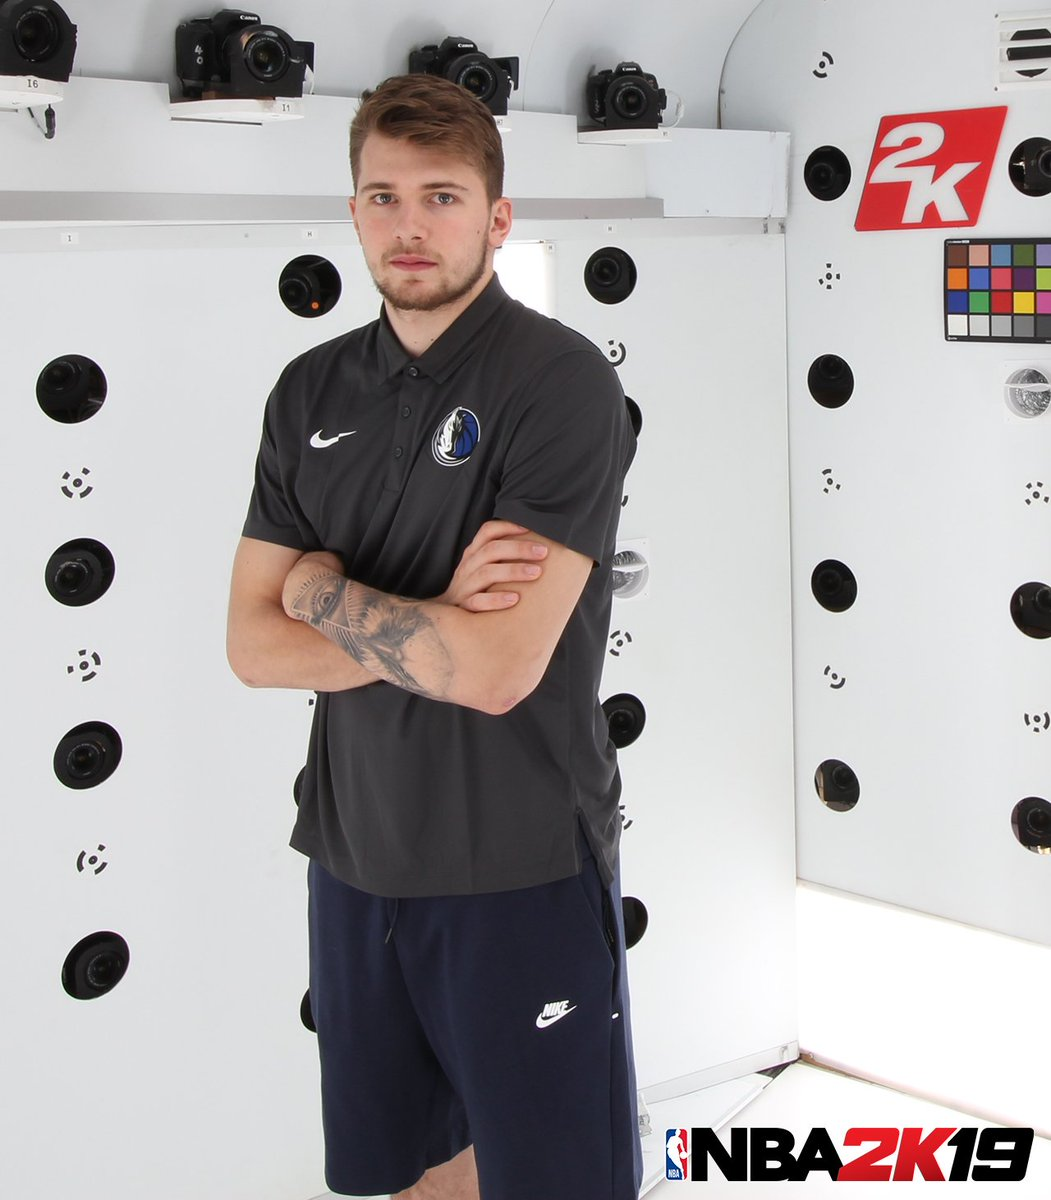 Luka Doncic On Twitter Ronnie2k Where Are My Tattoos